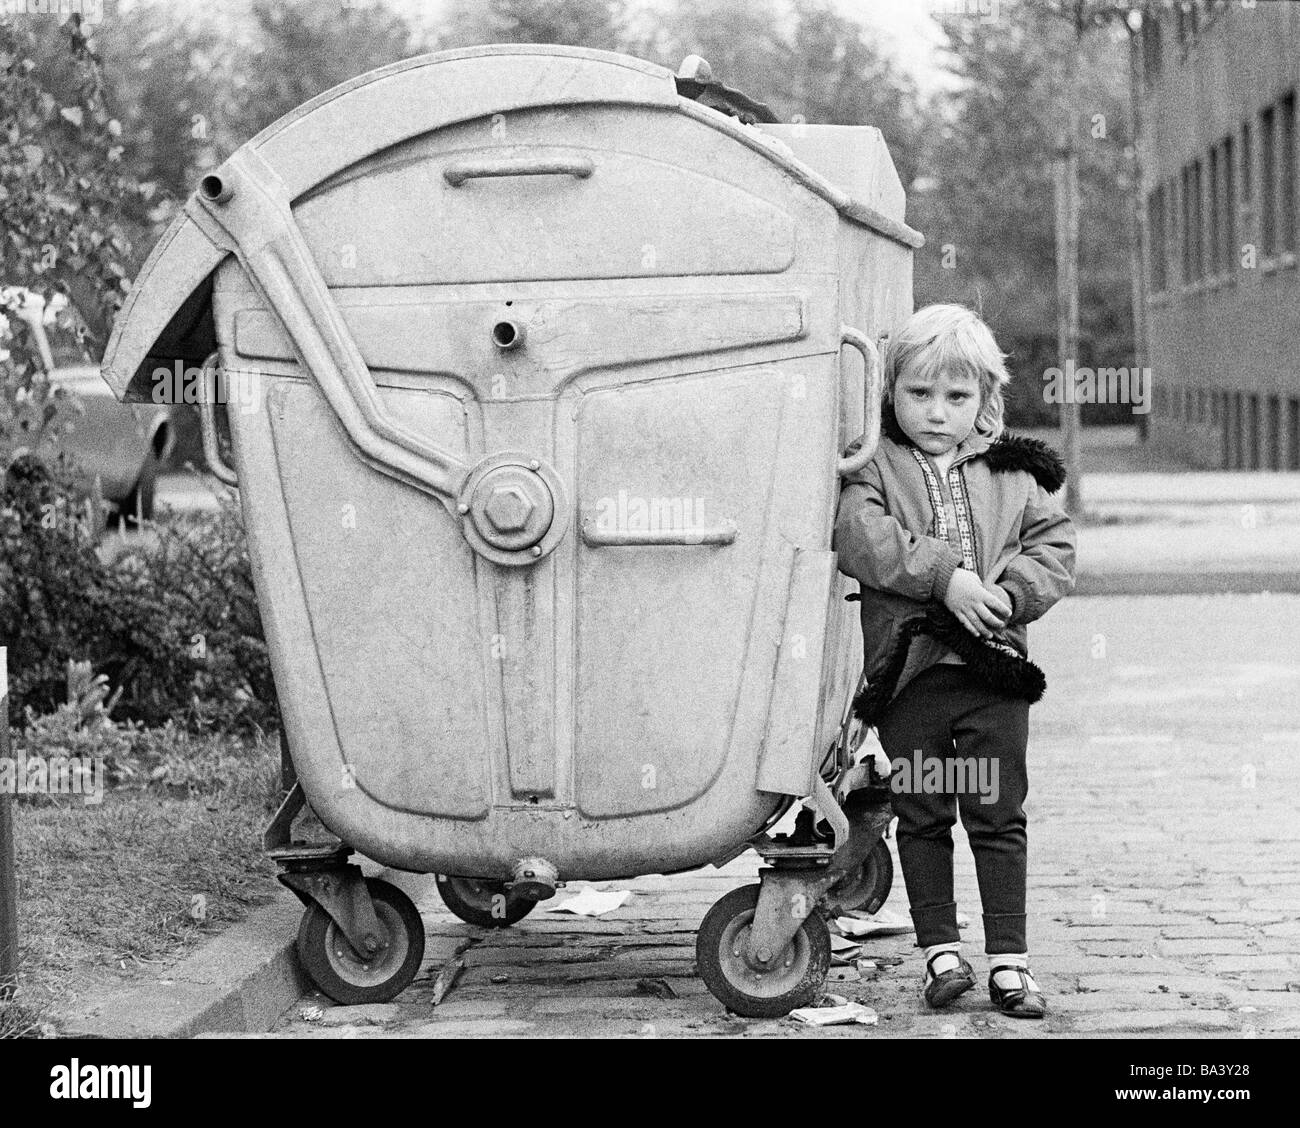 Seventies, black and white photo, people, children, little girl stands near a refuse container, aged 4 to 6 years Stock Photo